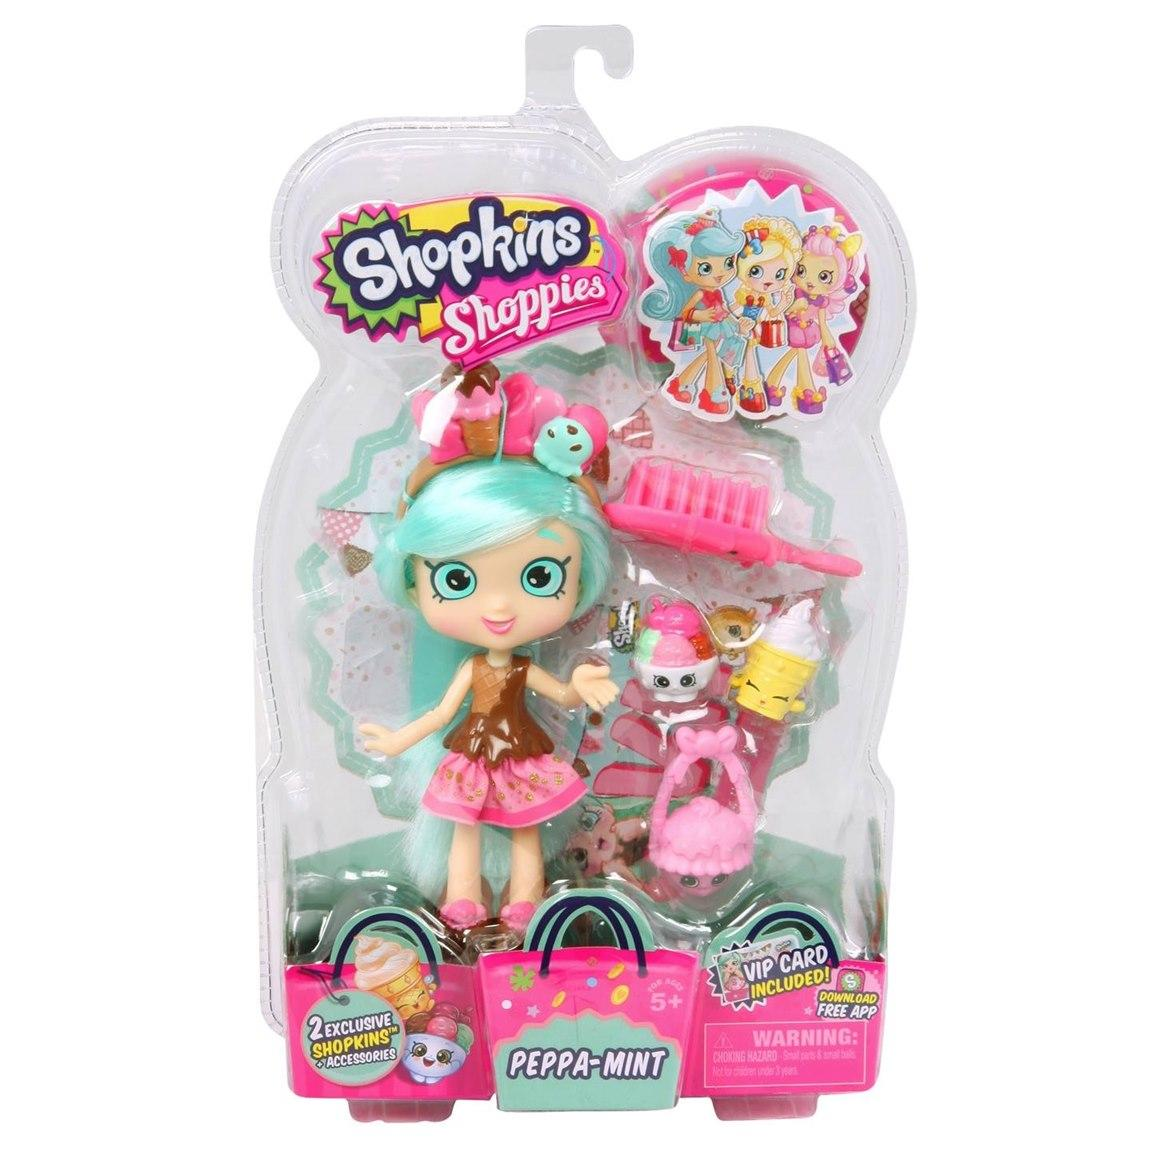 [Moose] Shopkins Shoppies Dolls Single Pack - Peppa-Mint